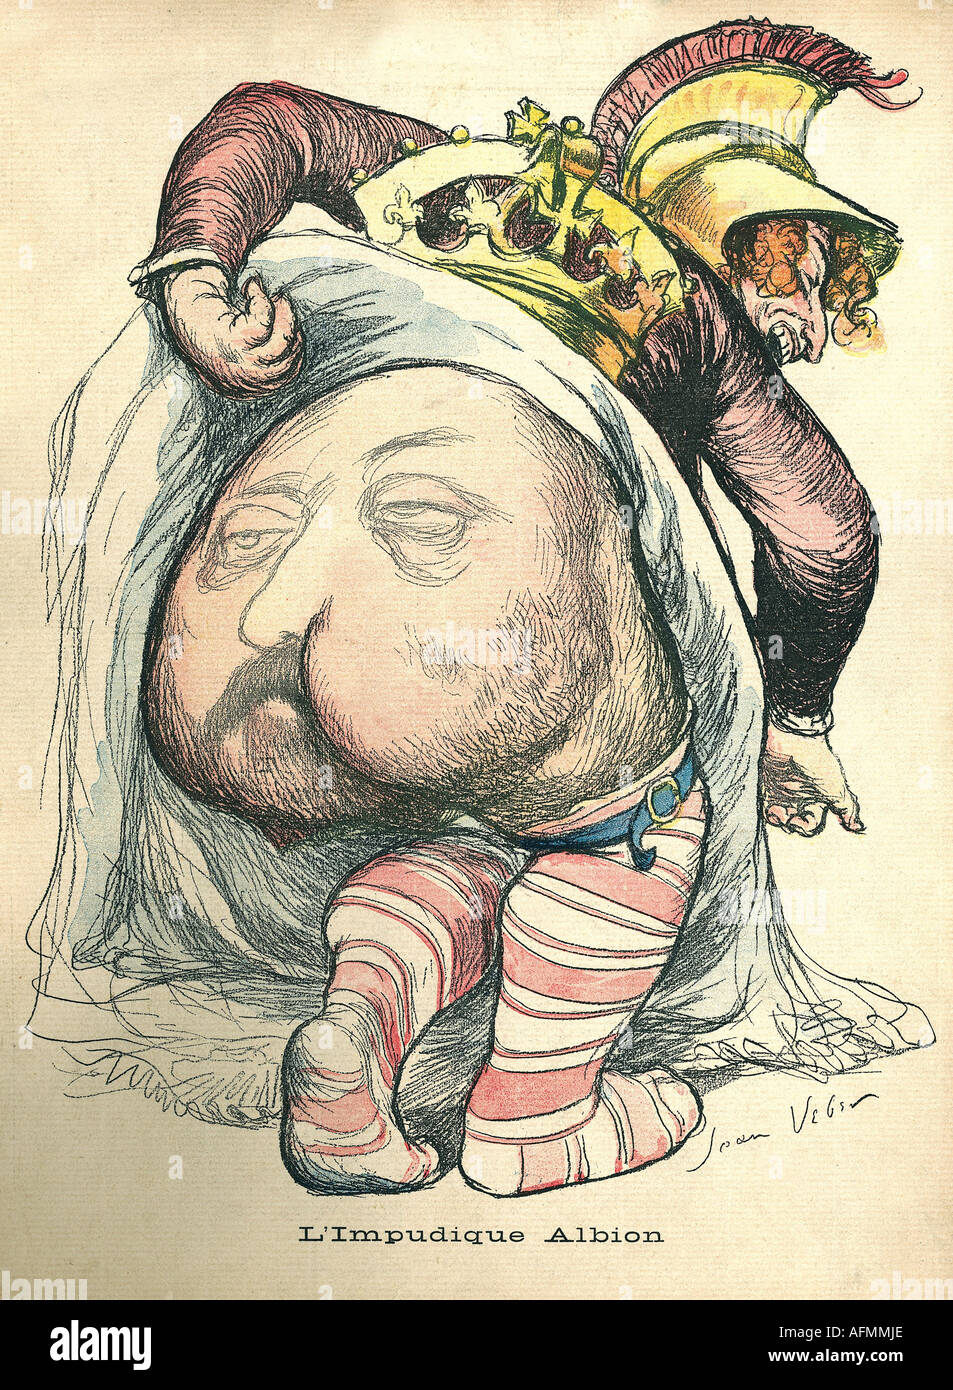 Edward VII, 9.11.1841 - 6.5.1910, King of Great Britain 22.1.1901 - 6.5.1910, caricature, impure Albion, drawing by Jean Veber, lithograph, France, 1901, , Additional-Rights-Clearances-NA - Stock Image